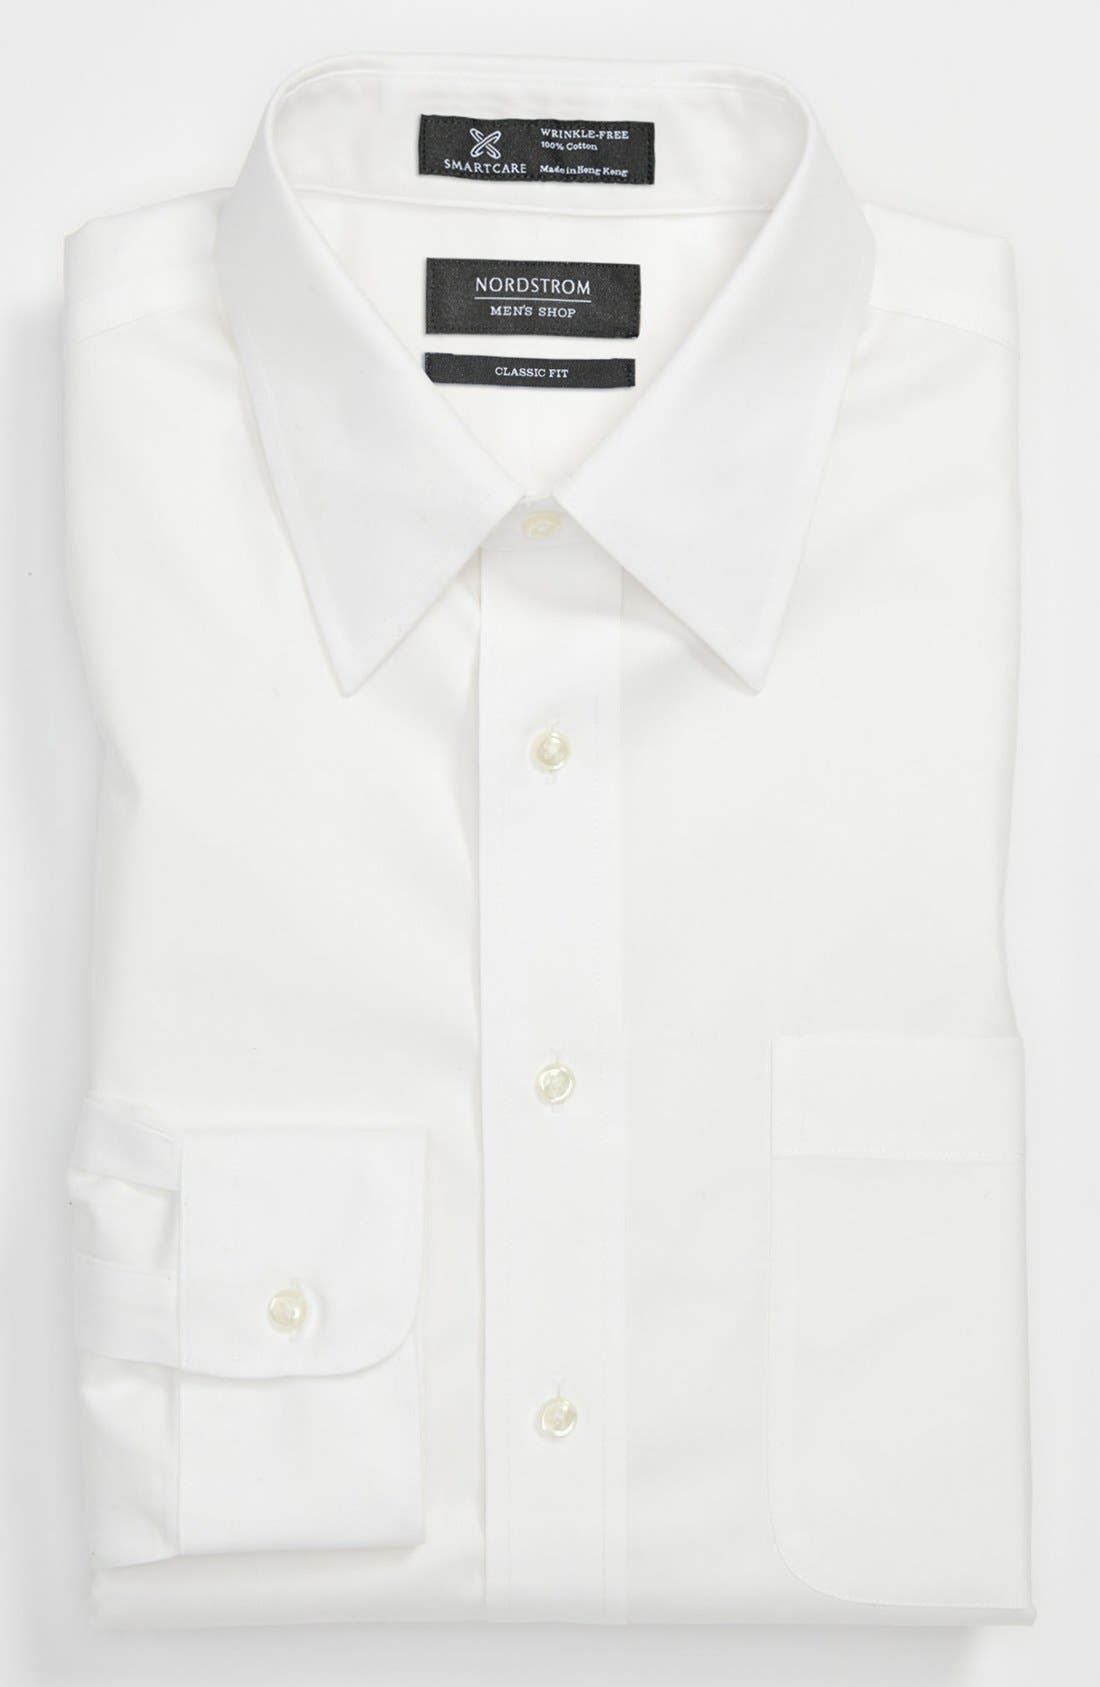 Nordstrom Men's Shop Smartcare™ Classic Fit Solid Dress Shirt (Online Only)